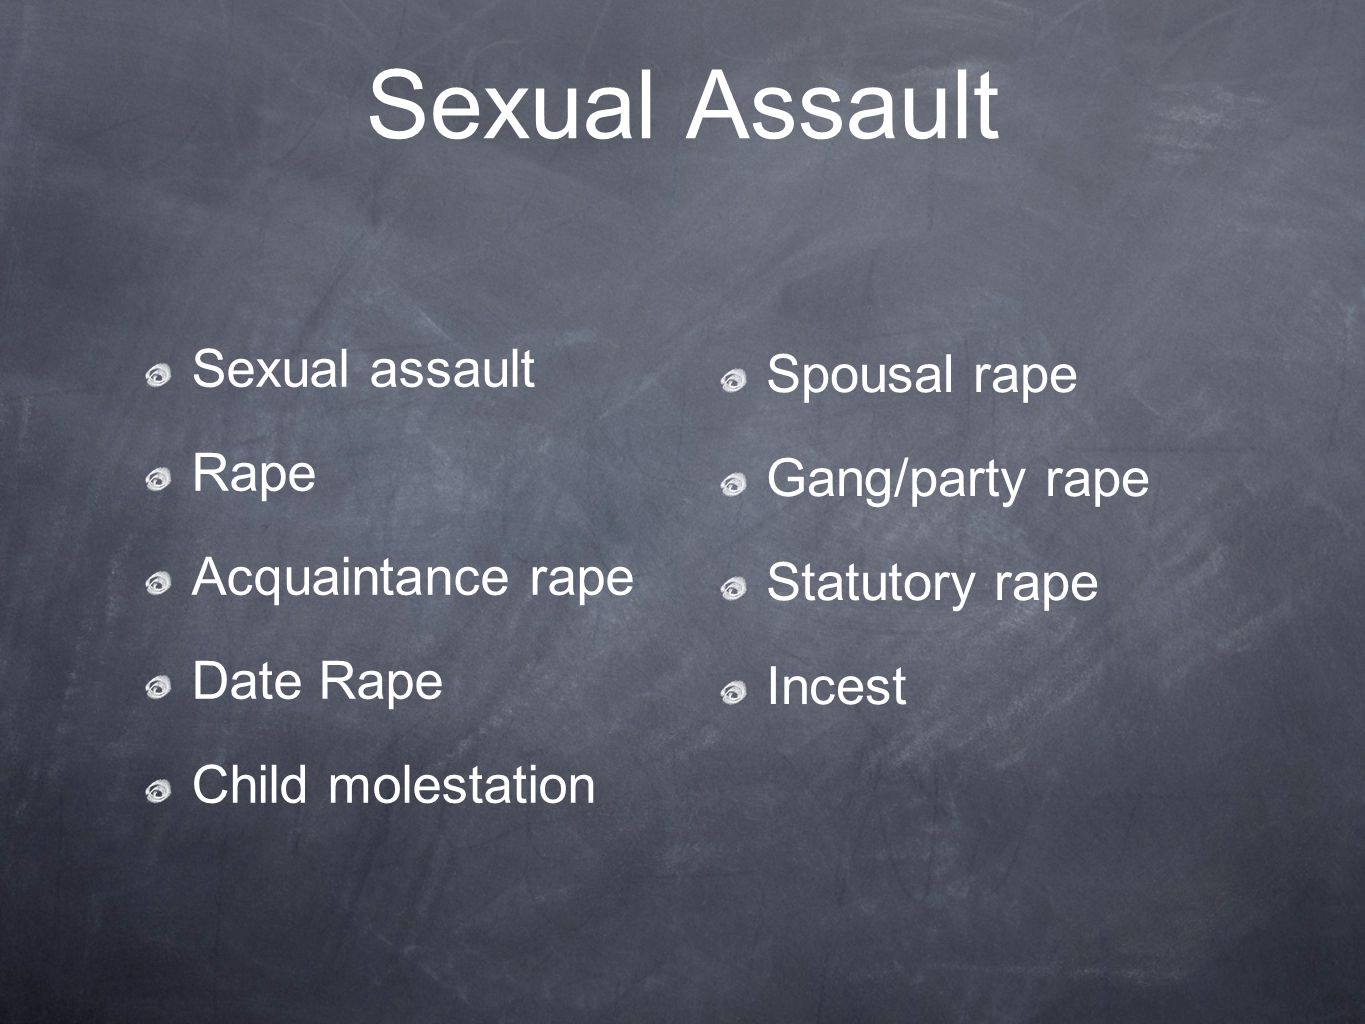 Sexual Assault Sexual assault Rape Acquaintance rape Date Rape Child molestation Spousal rape Gang/party rape Statutory rape Incest